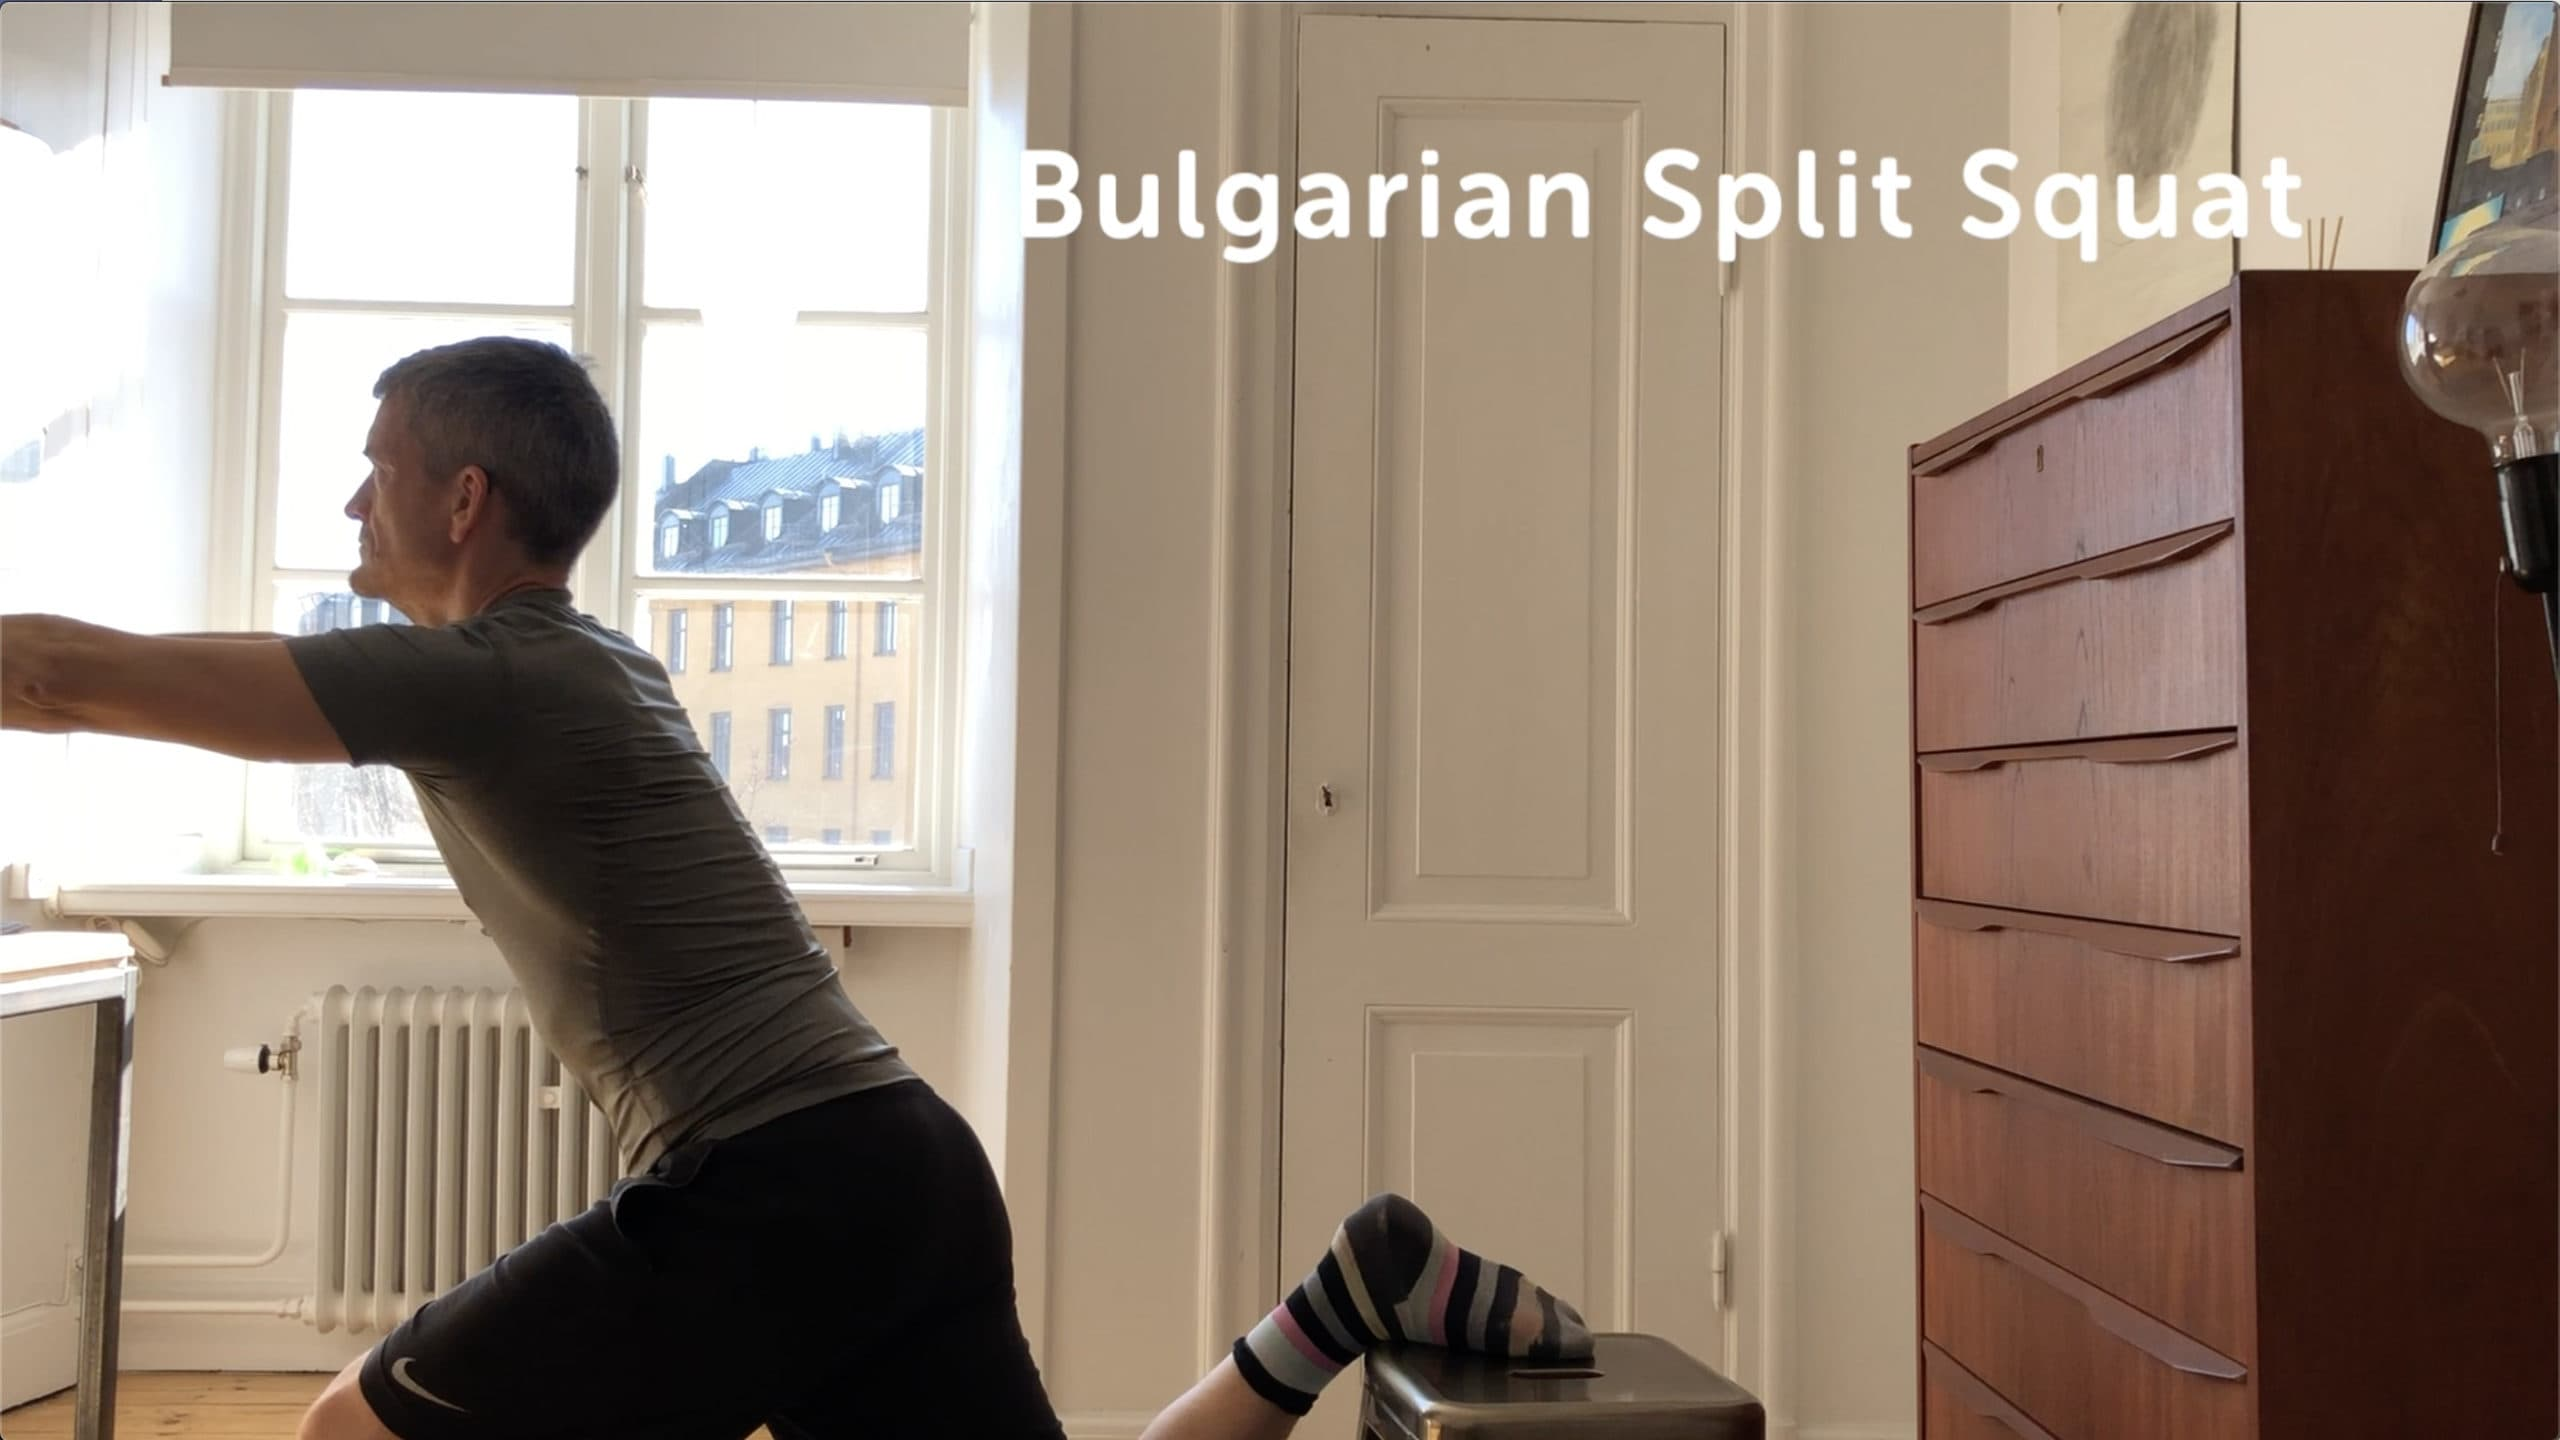 Unilateral exercise: Use one limb to double the weight during Bulgarian Split Squats